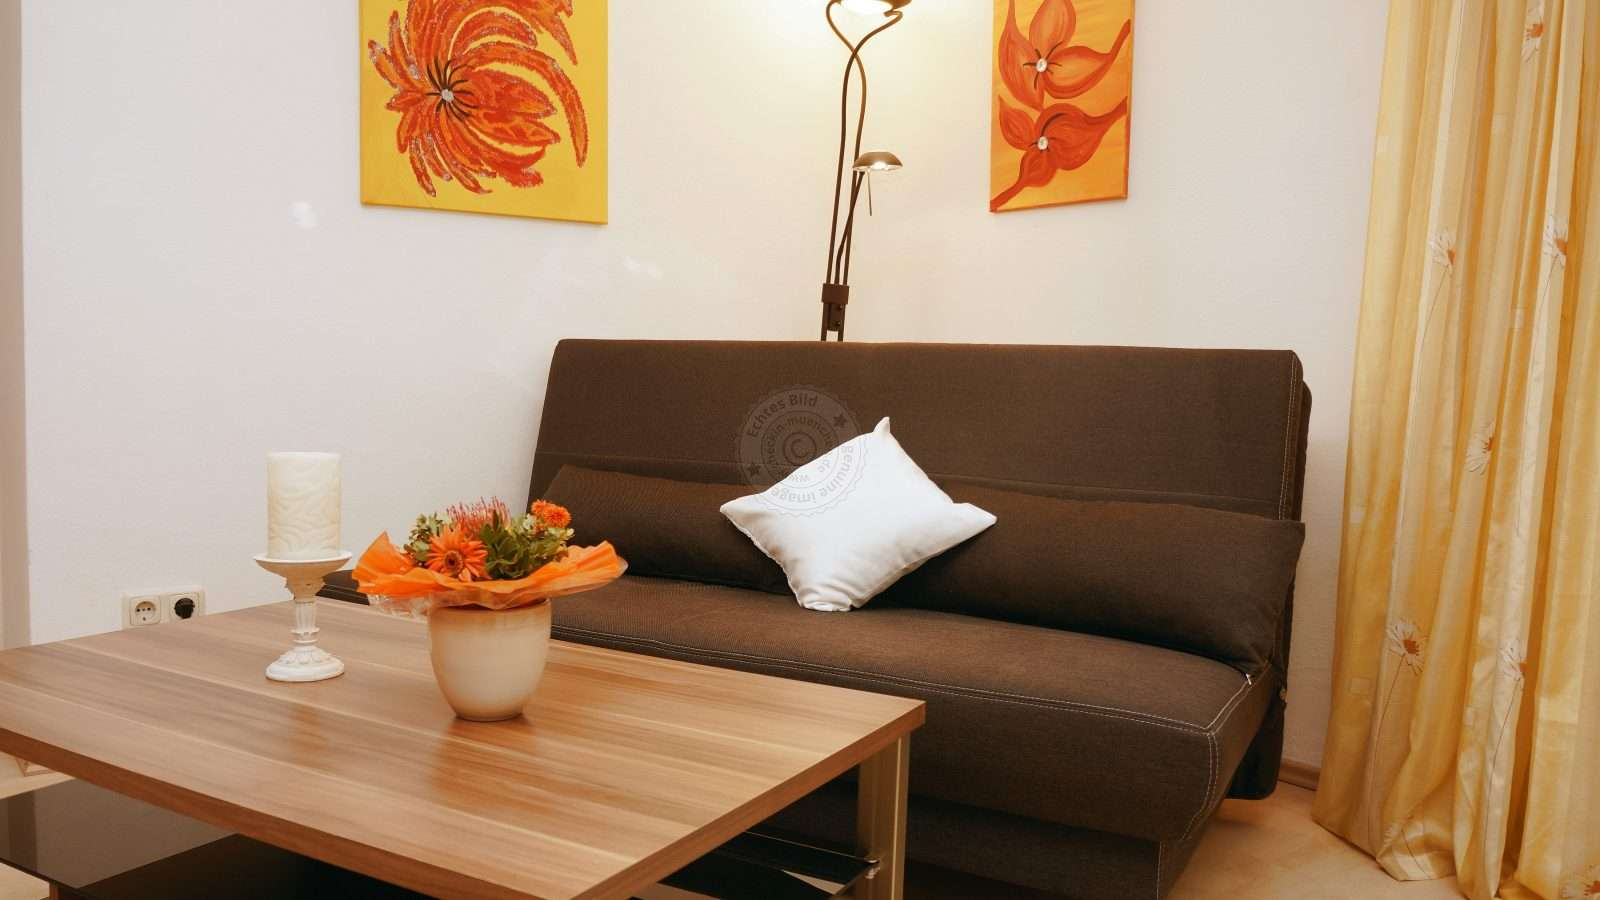 Sofa with coffee table in the living room